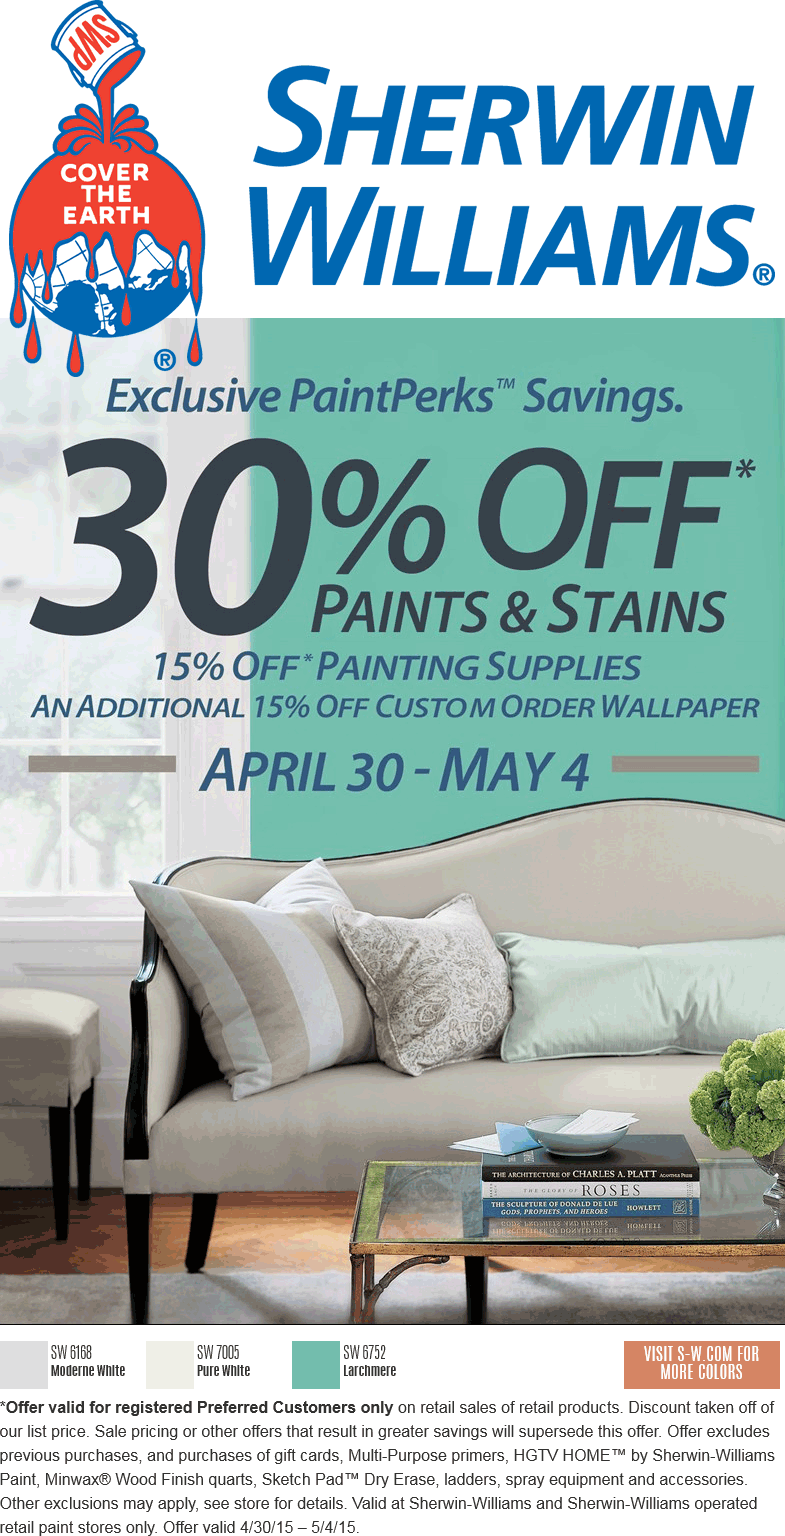 Sherwin Williams Coupon June 2018 30% off paint & stains at Sherwin Williams